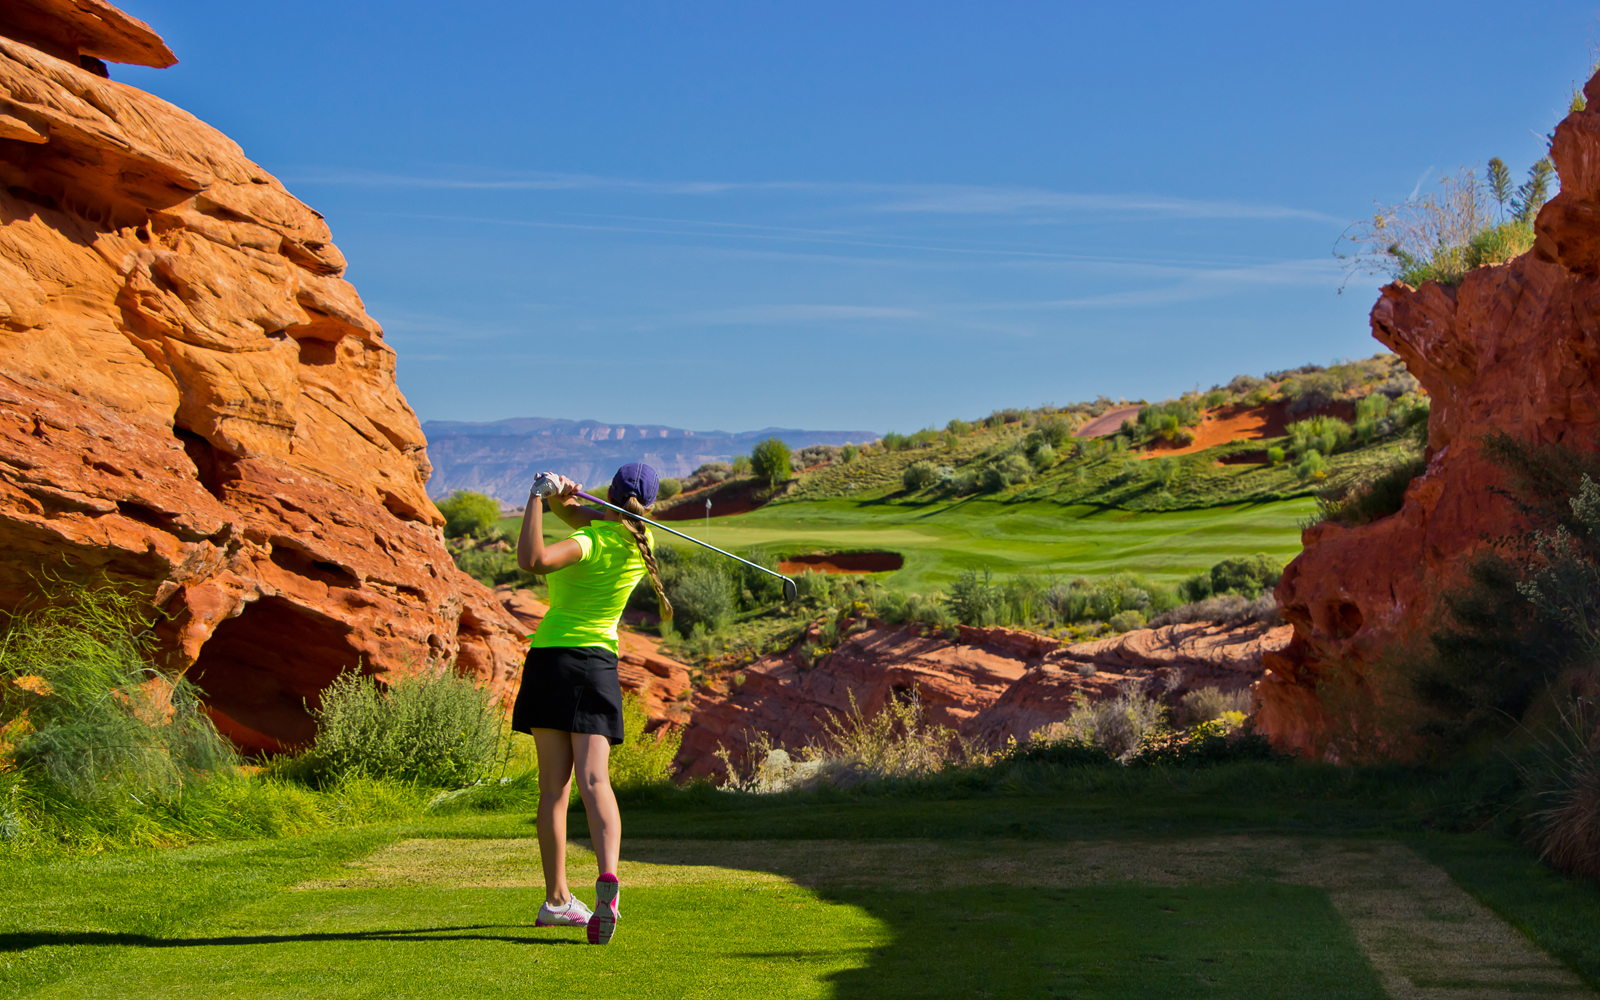 Winter golf is in play at Sand Hallow in Utah